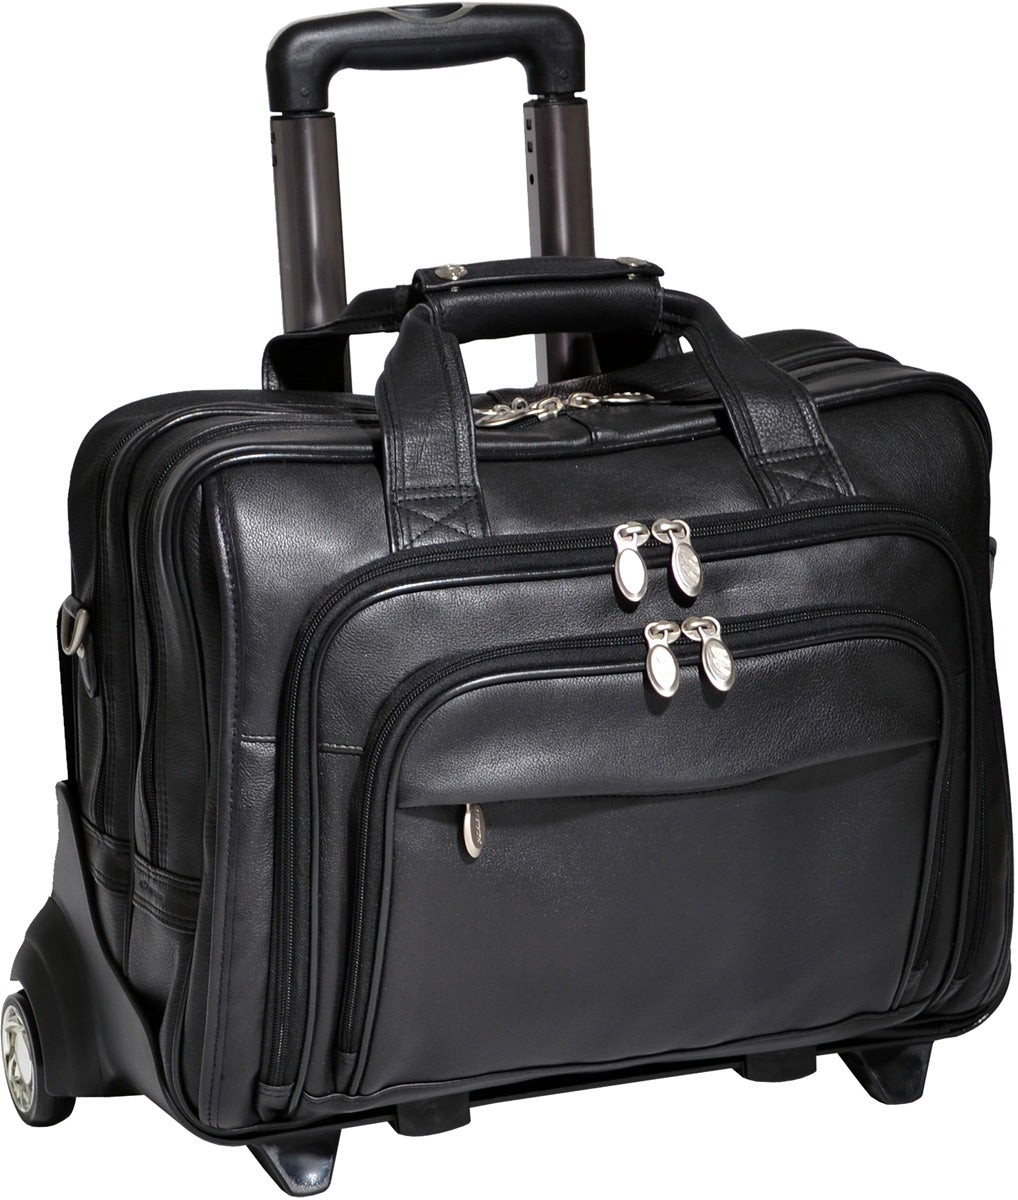 McKlein i Series Gold Coast Leather 17in Wheeled Laptop Case